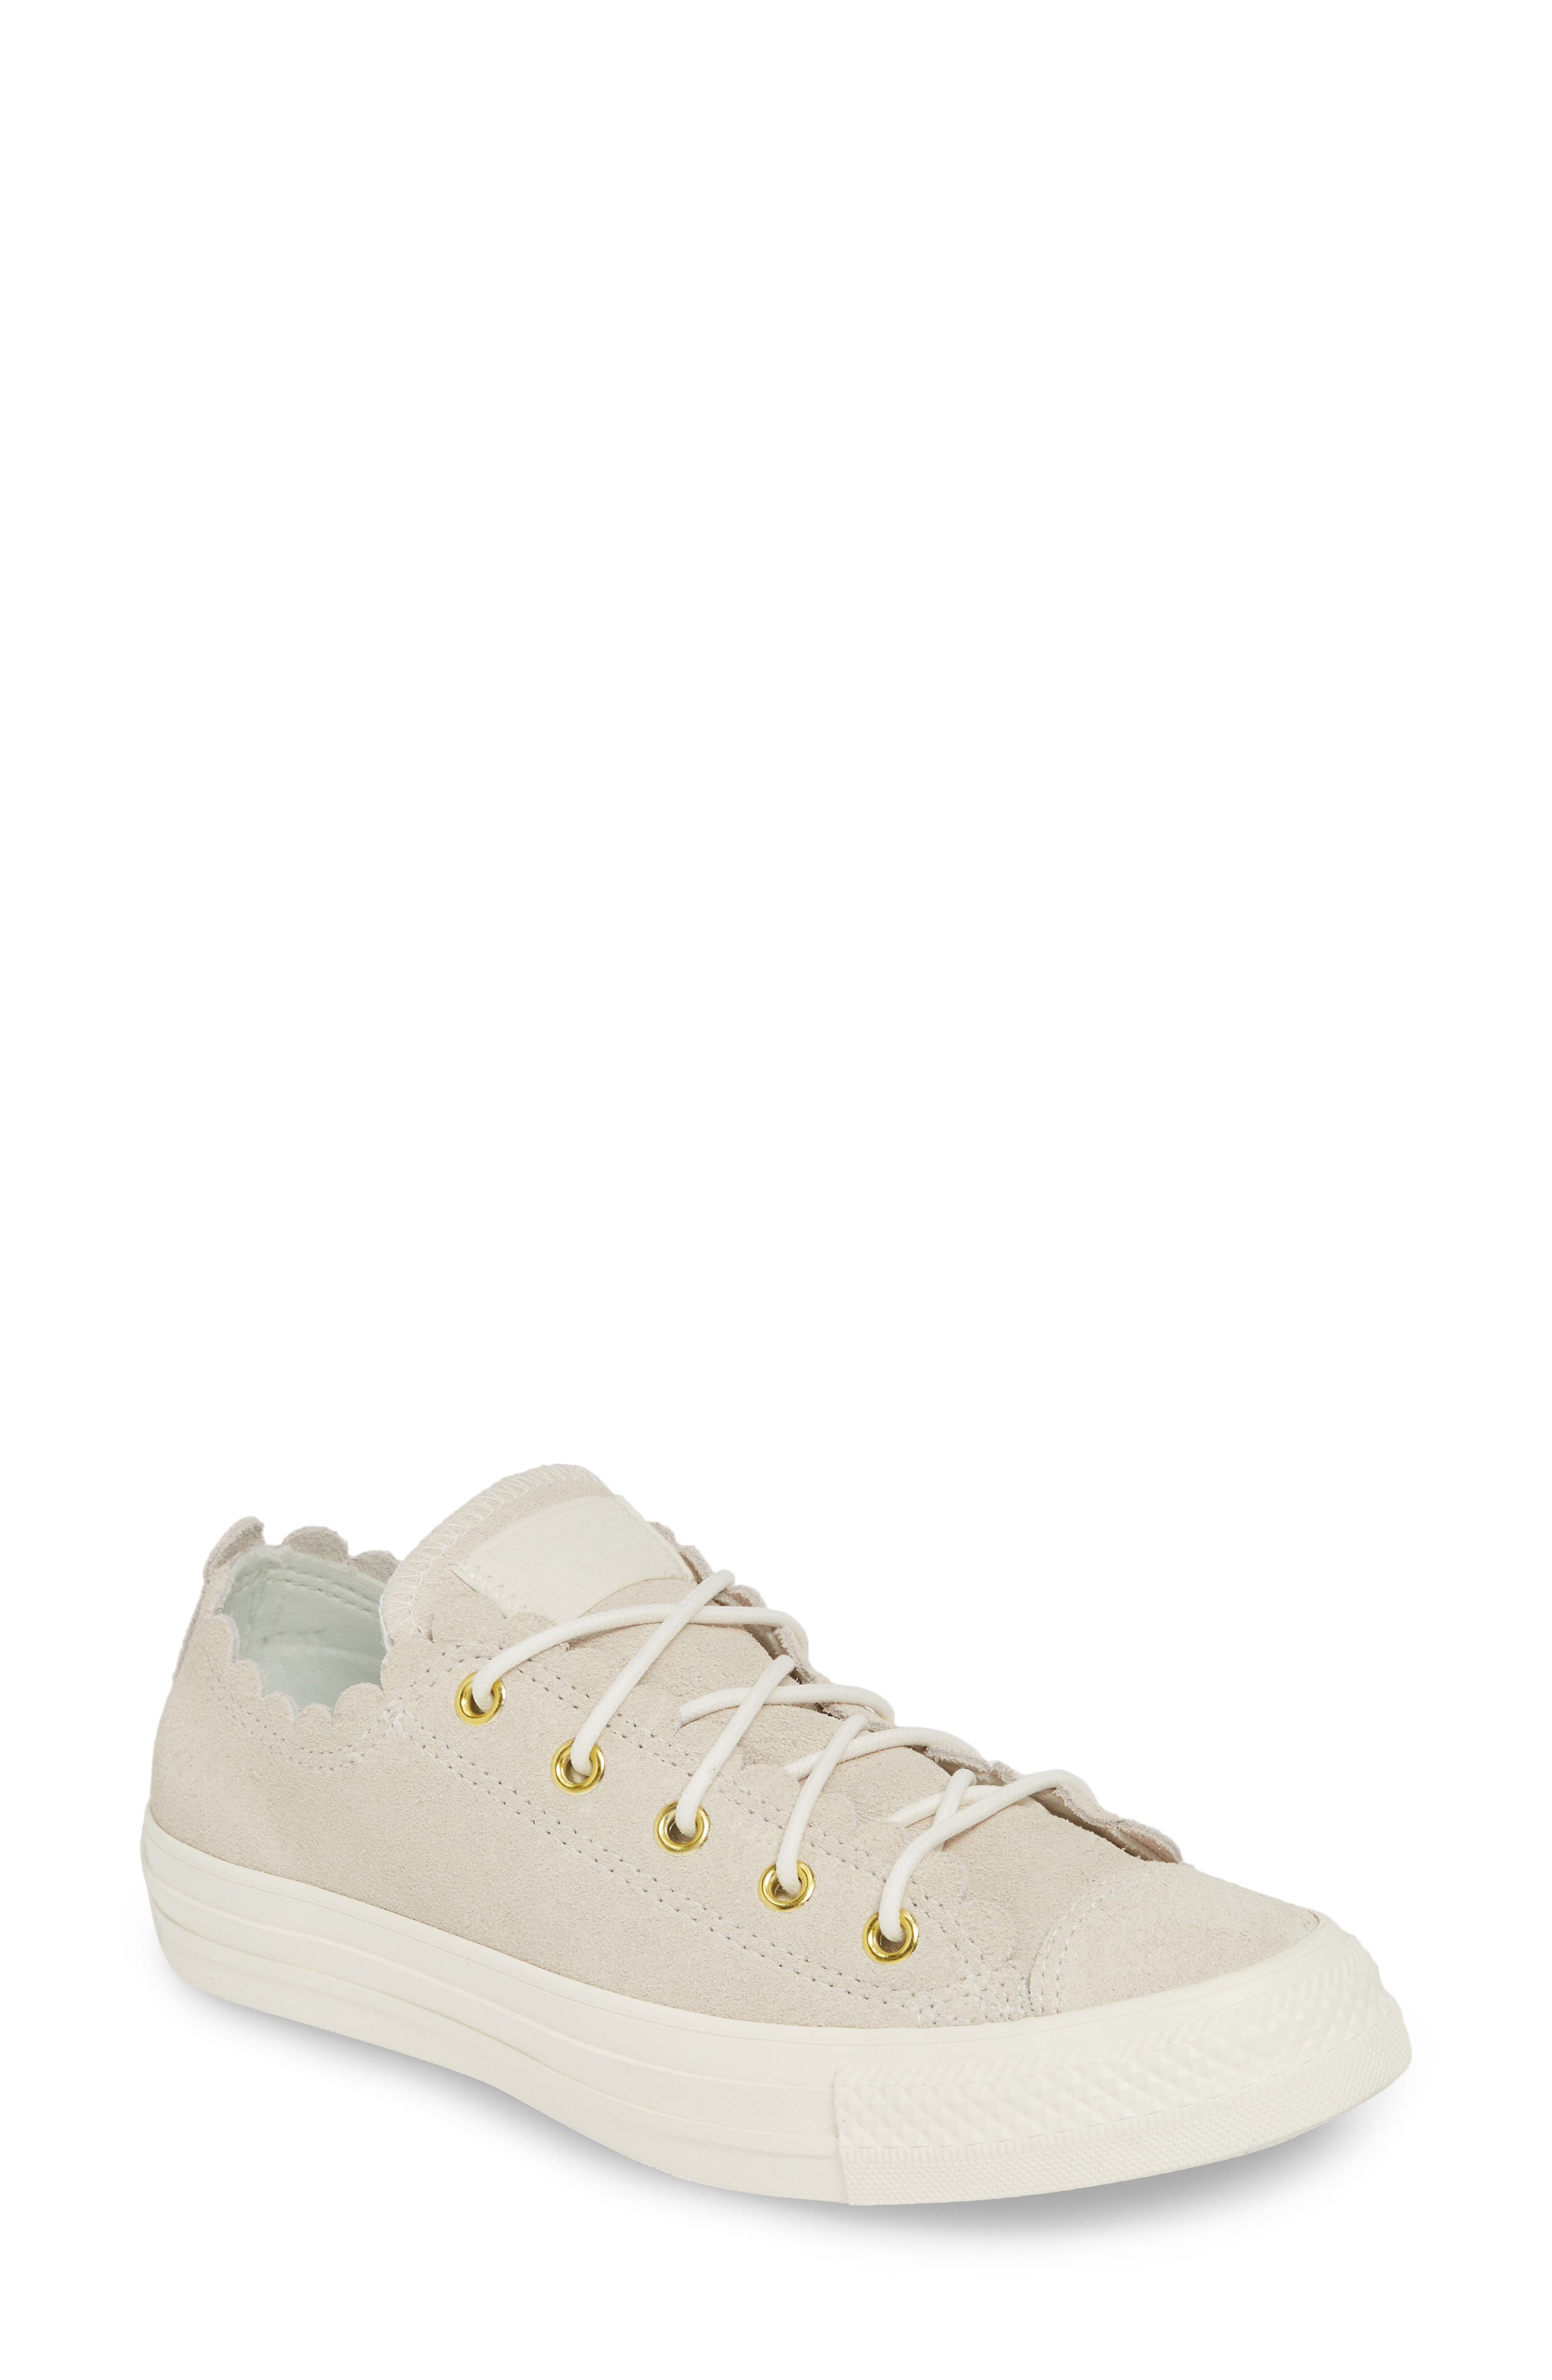 Converse Women S Chuck Taylor All Star Scalloped Low-Top Sneakers In Egret   Gold  2617b1a5a